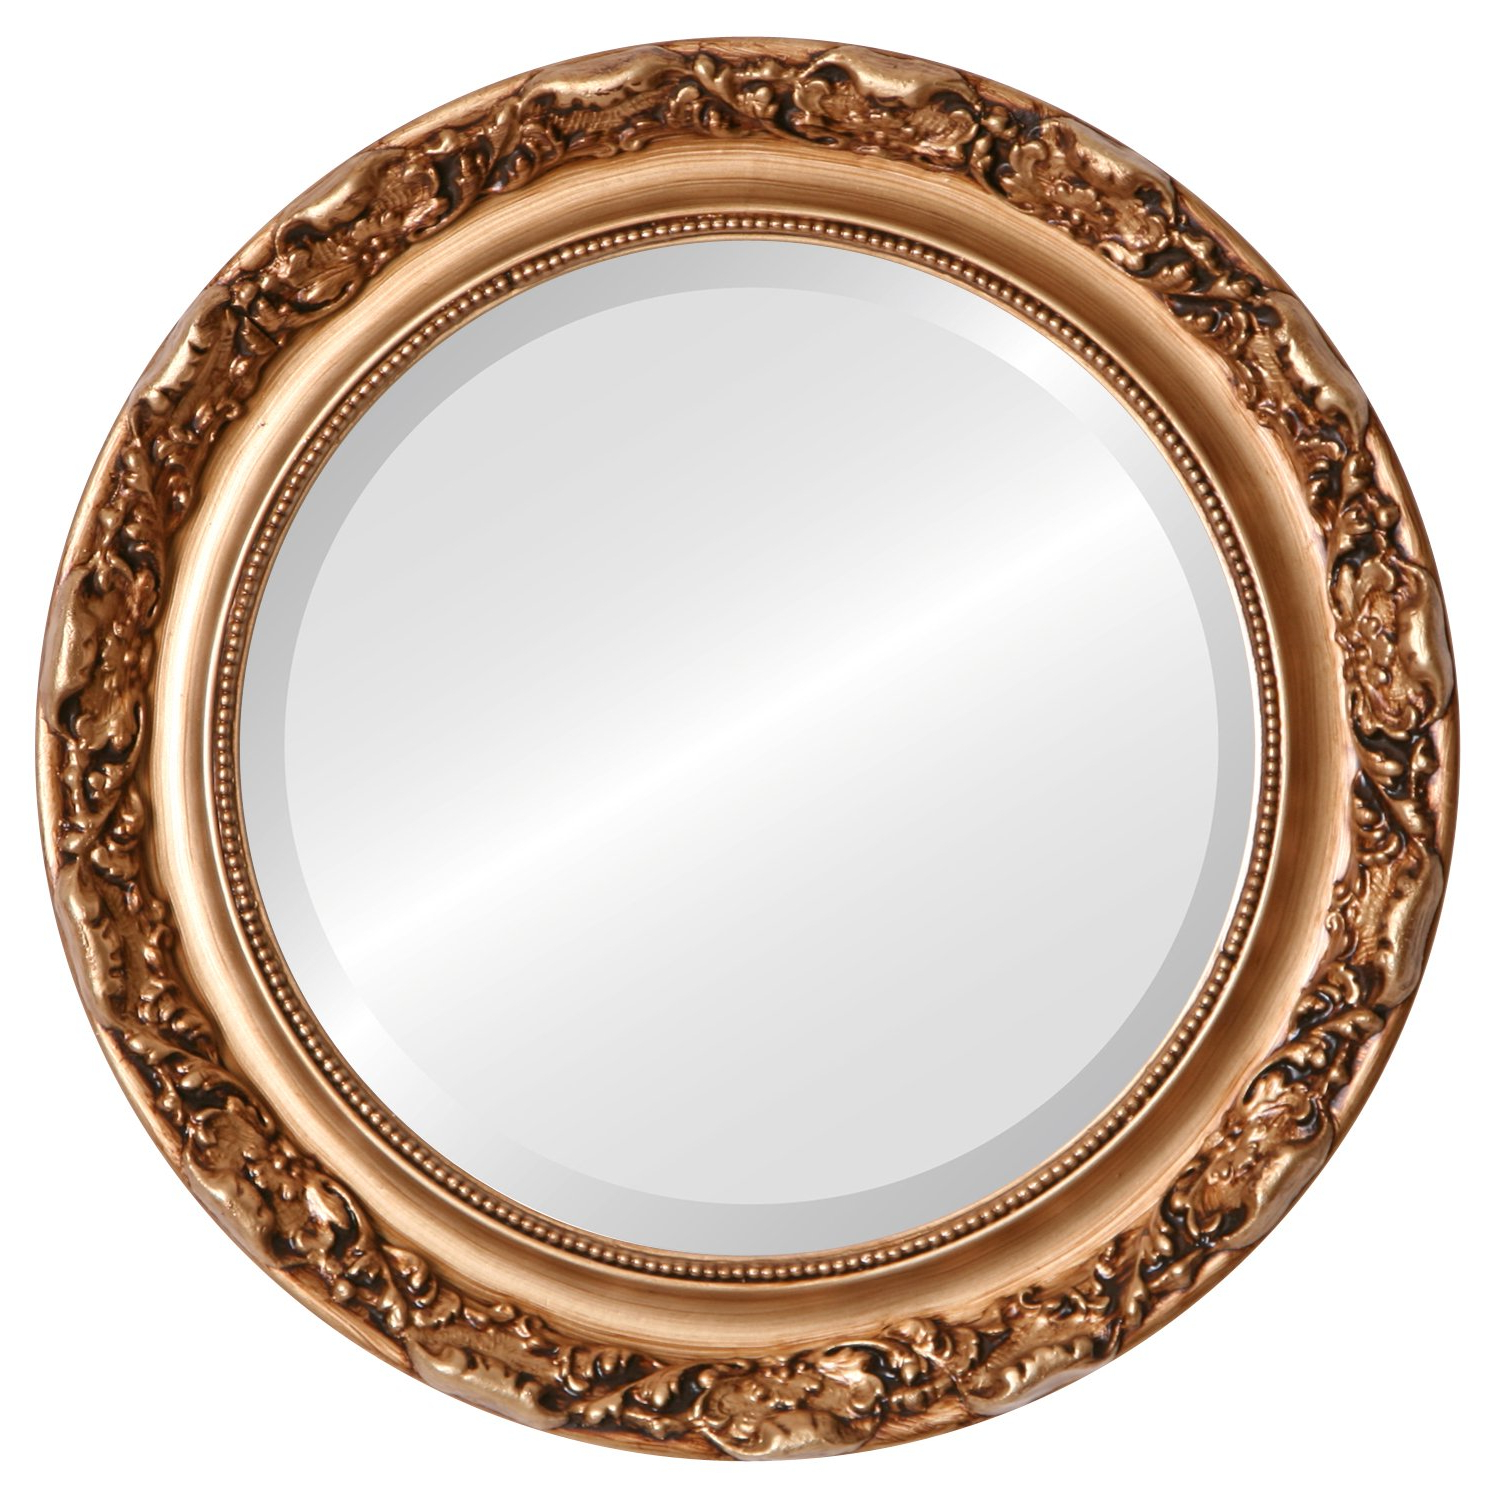 Most Popular Round Beveled Wall Mirrors Pertaining To Amazon: Round Beveled Wall Mirror For Home Decor – Rome Style (View 3 of 20)